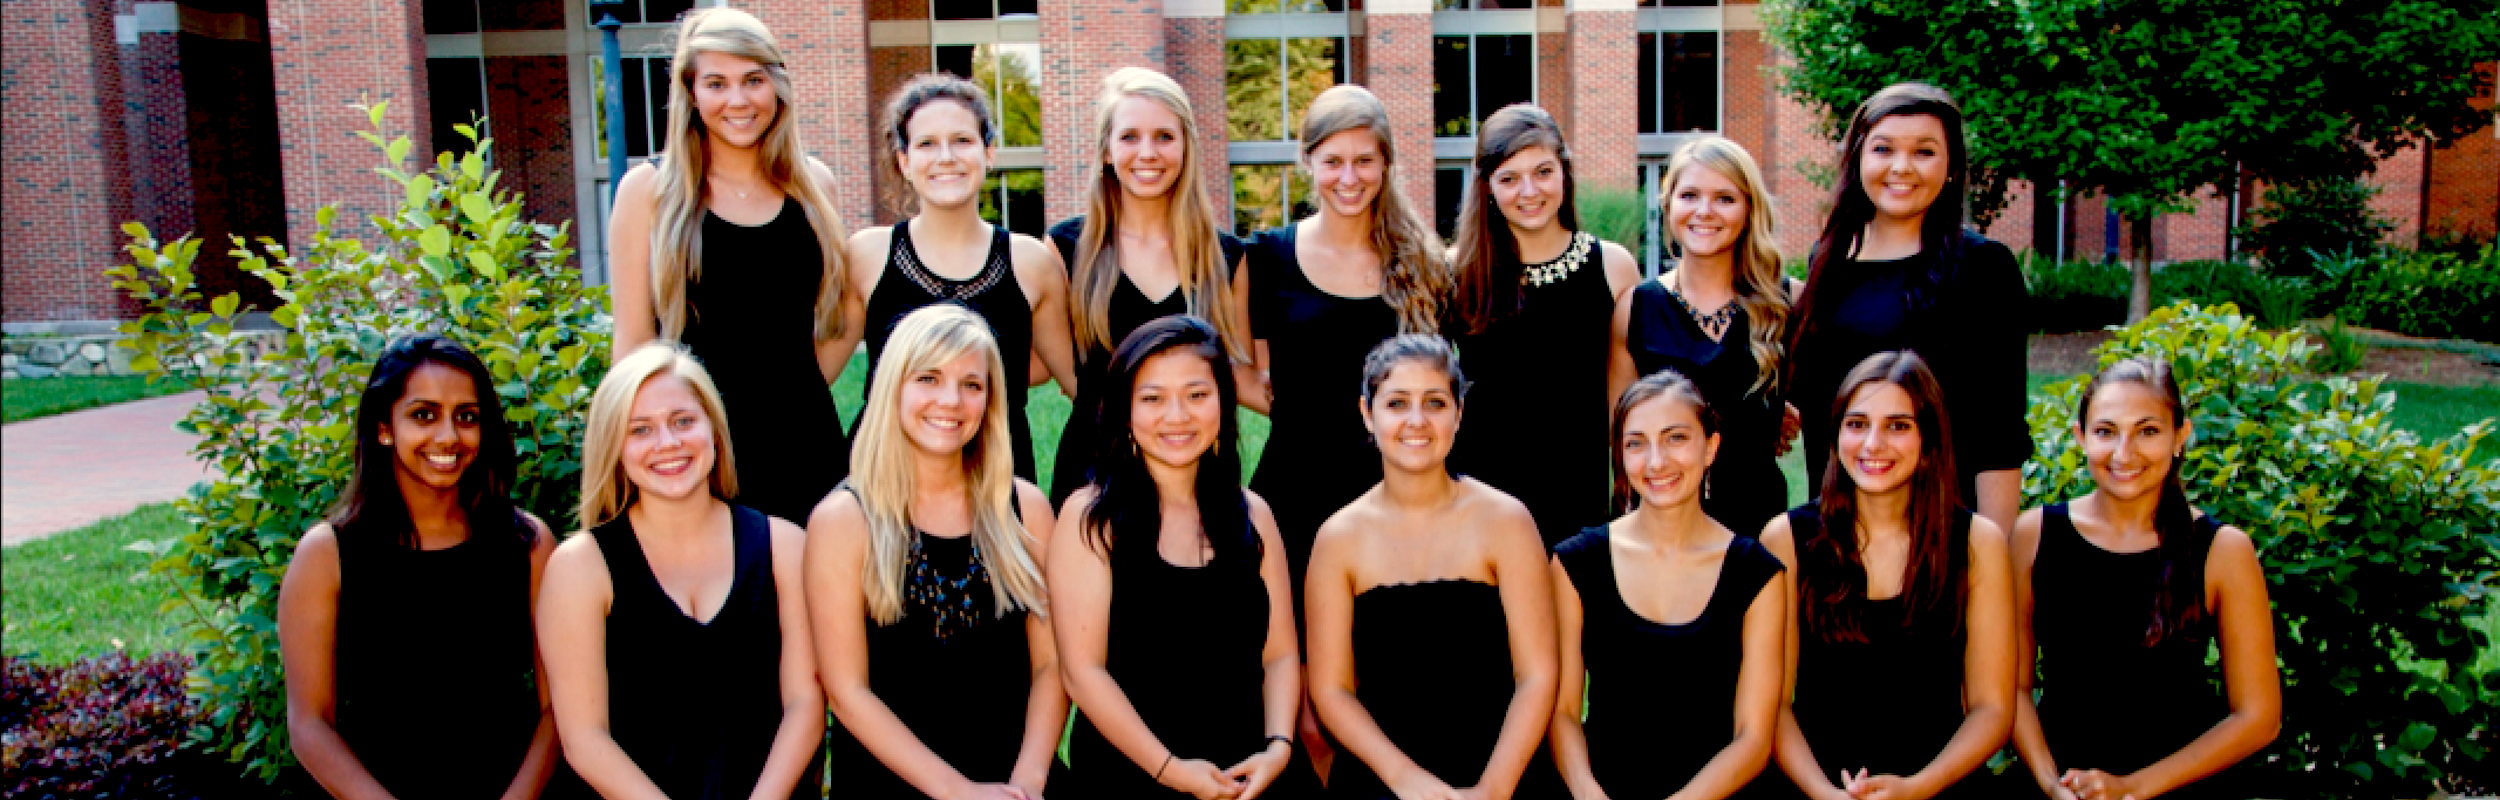 premiere all-female a cappella group at the University of North Carolina at Chapel Hill.